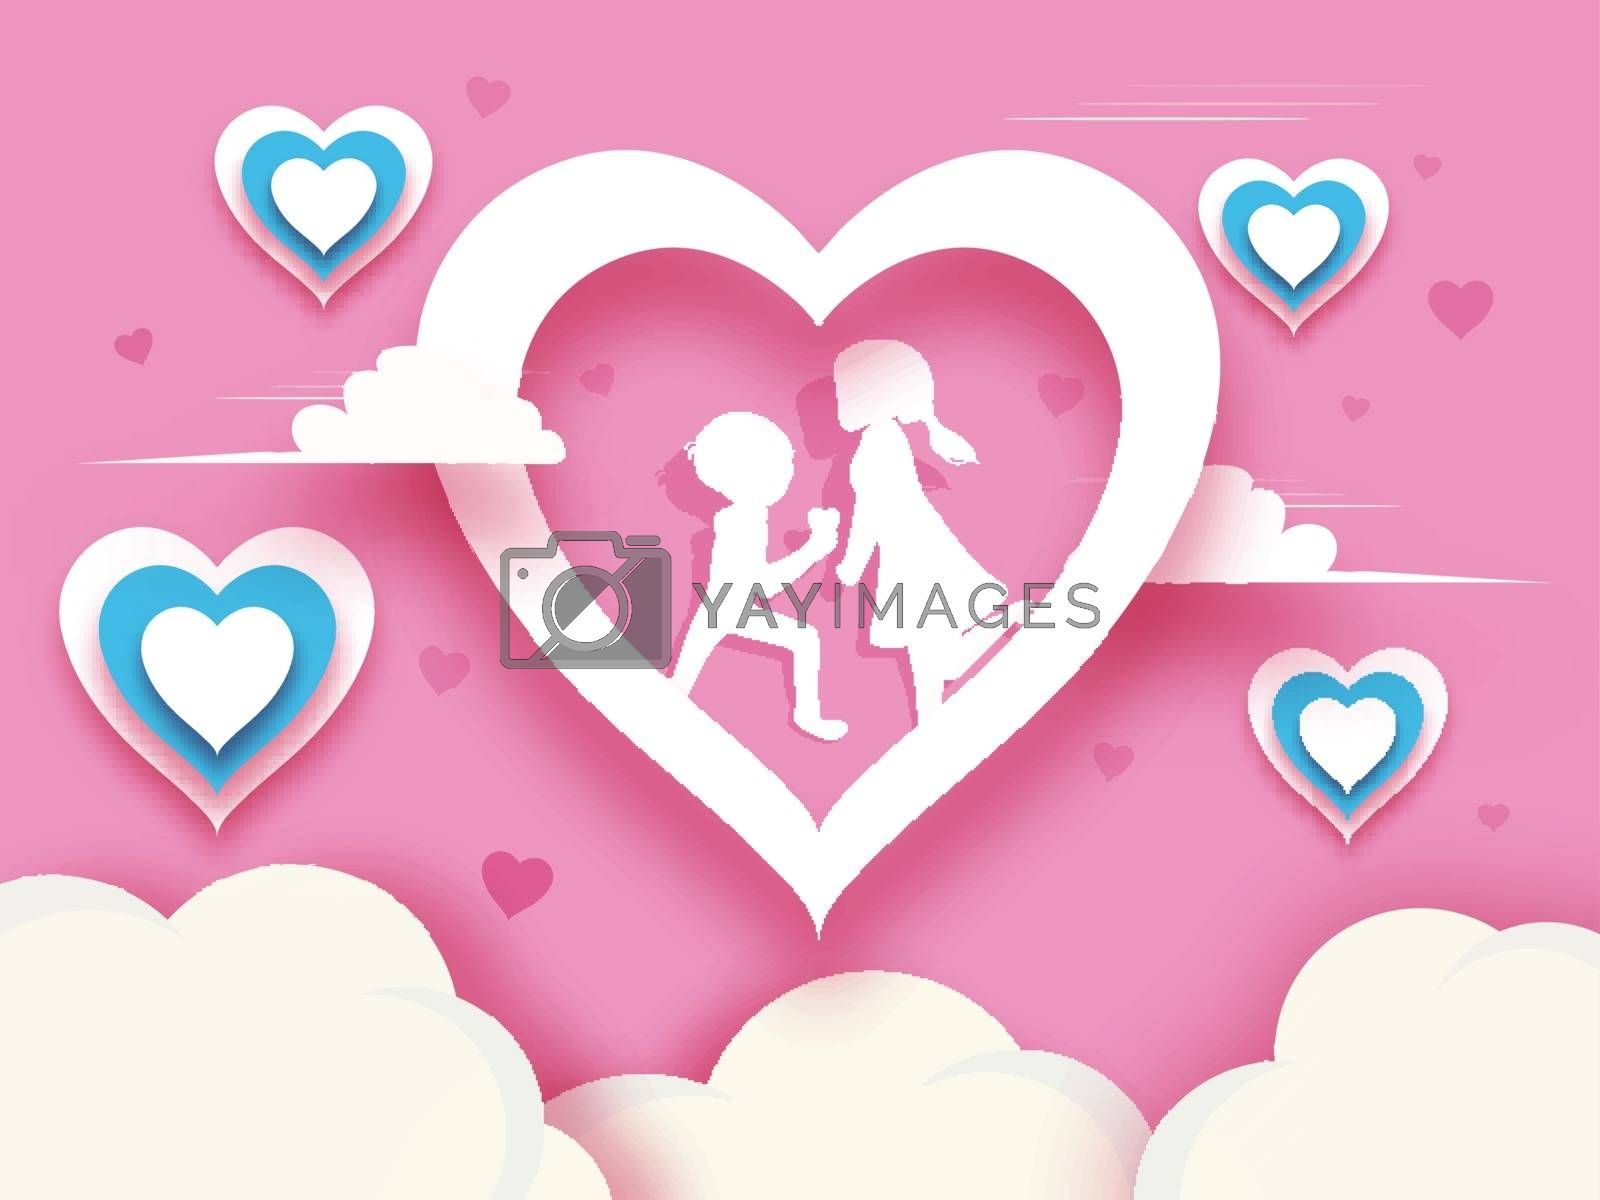 Paper cut style valentine's day background with cute couple and heart illustration. Love greeting card design.